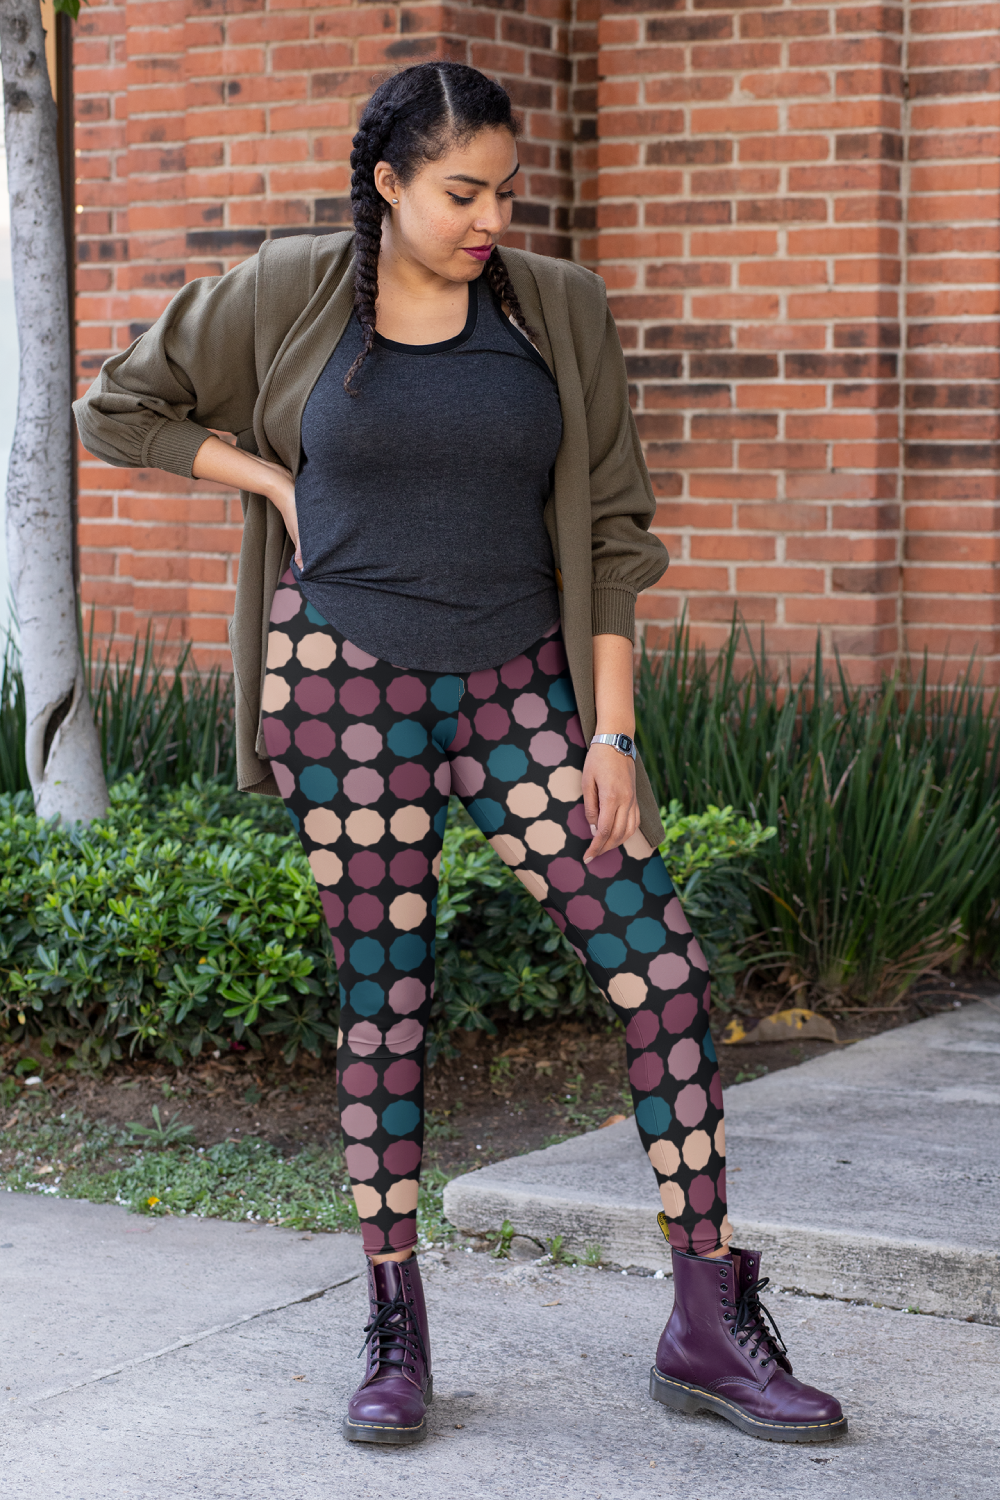 Flowy cardigan and tee paired with patterned leggings